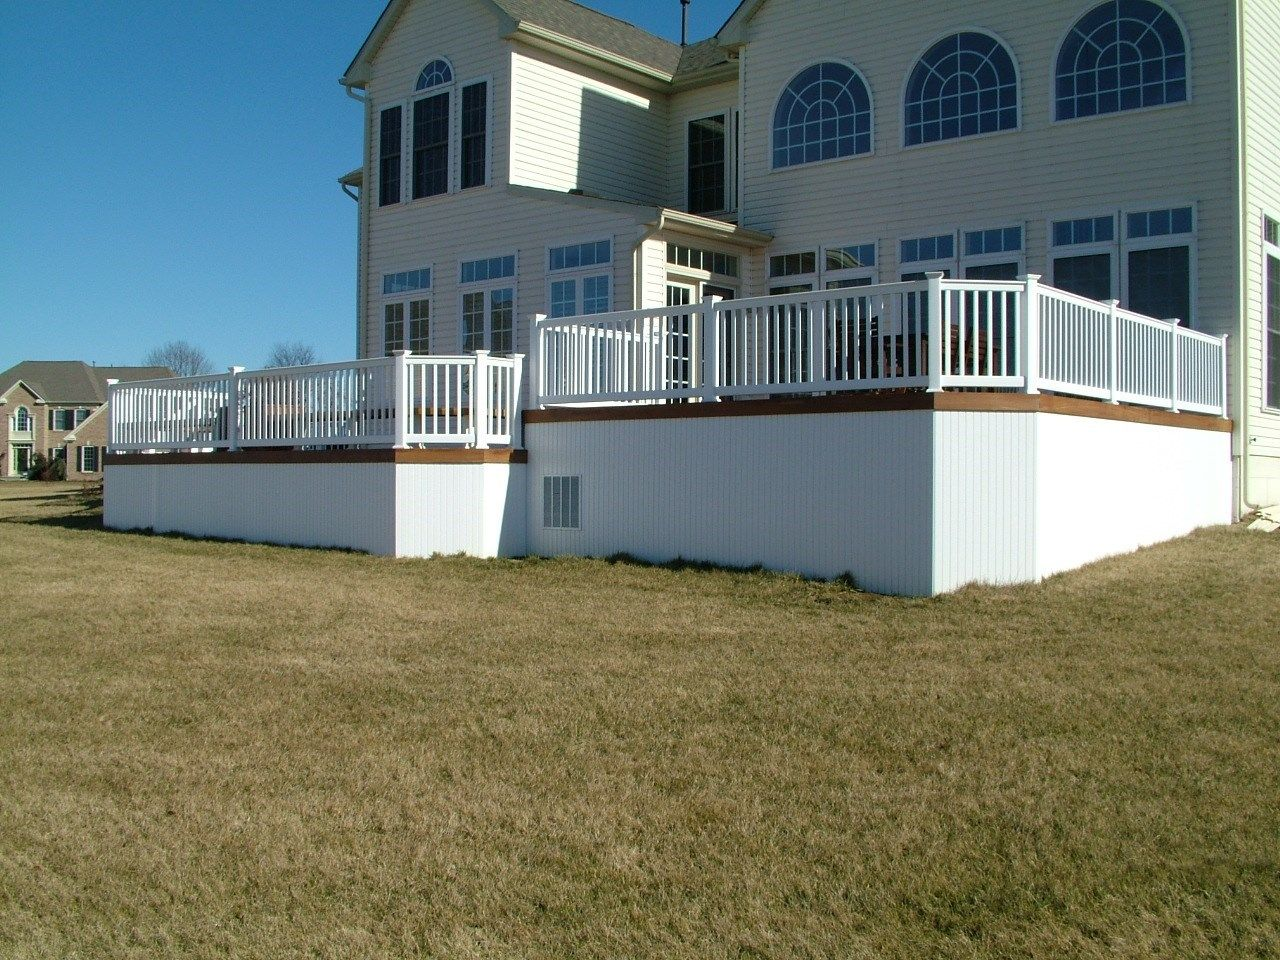 Custom Deck in Upper Freehold NJ - Picture 3427